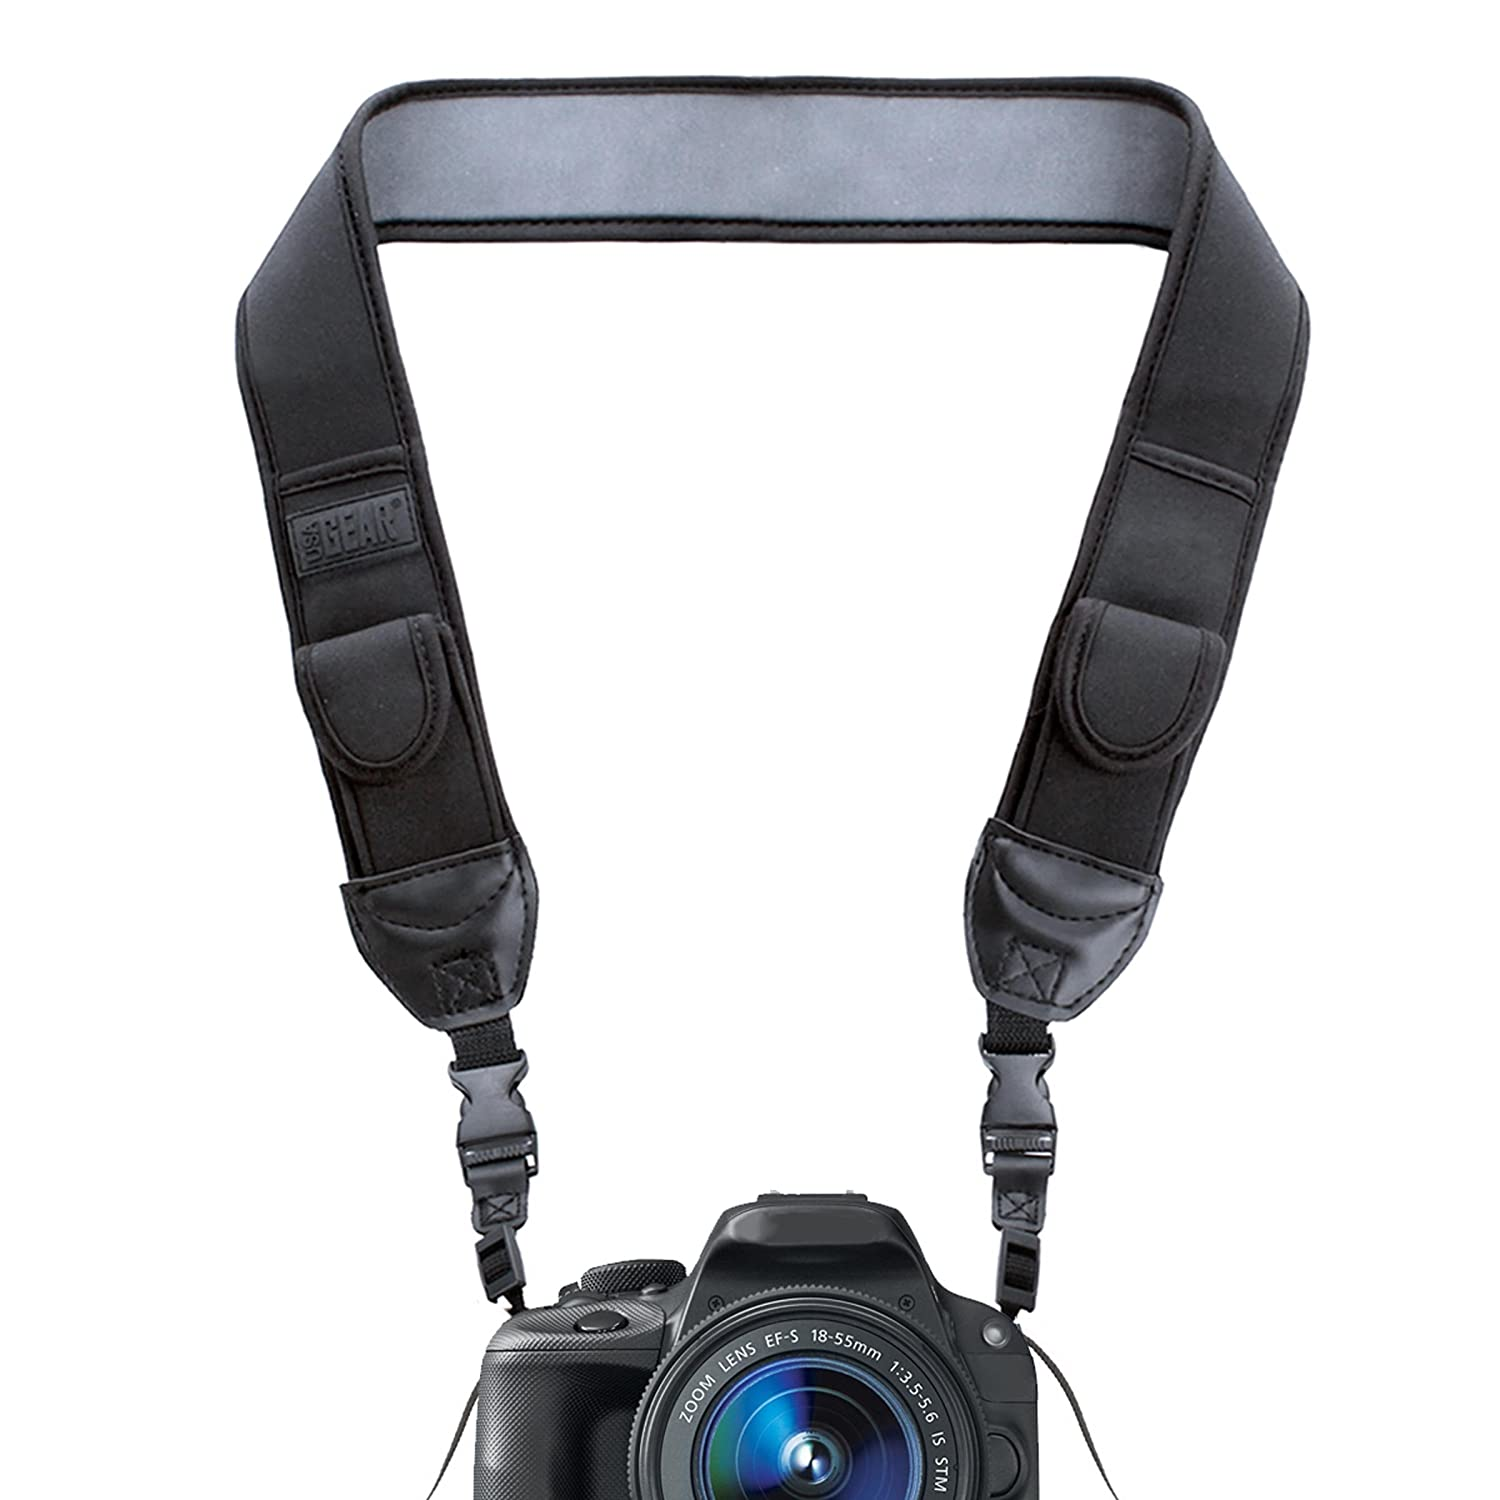 Camera Canon Dslr Camera Straps amazon com trueshot dslr camera neck strap neoprene with quick release clips and accessory storage pockets by usa gear works with